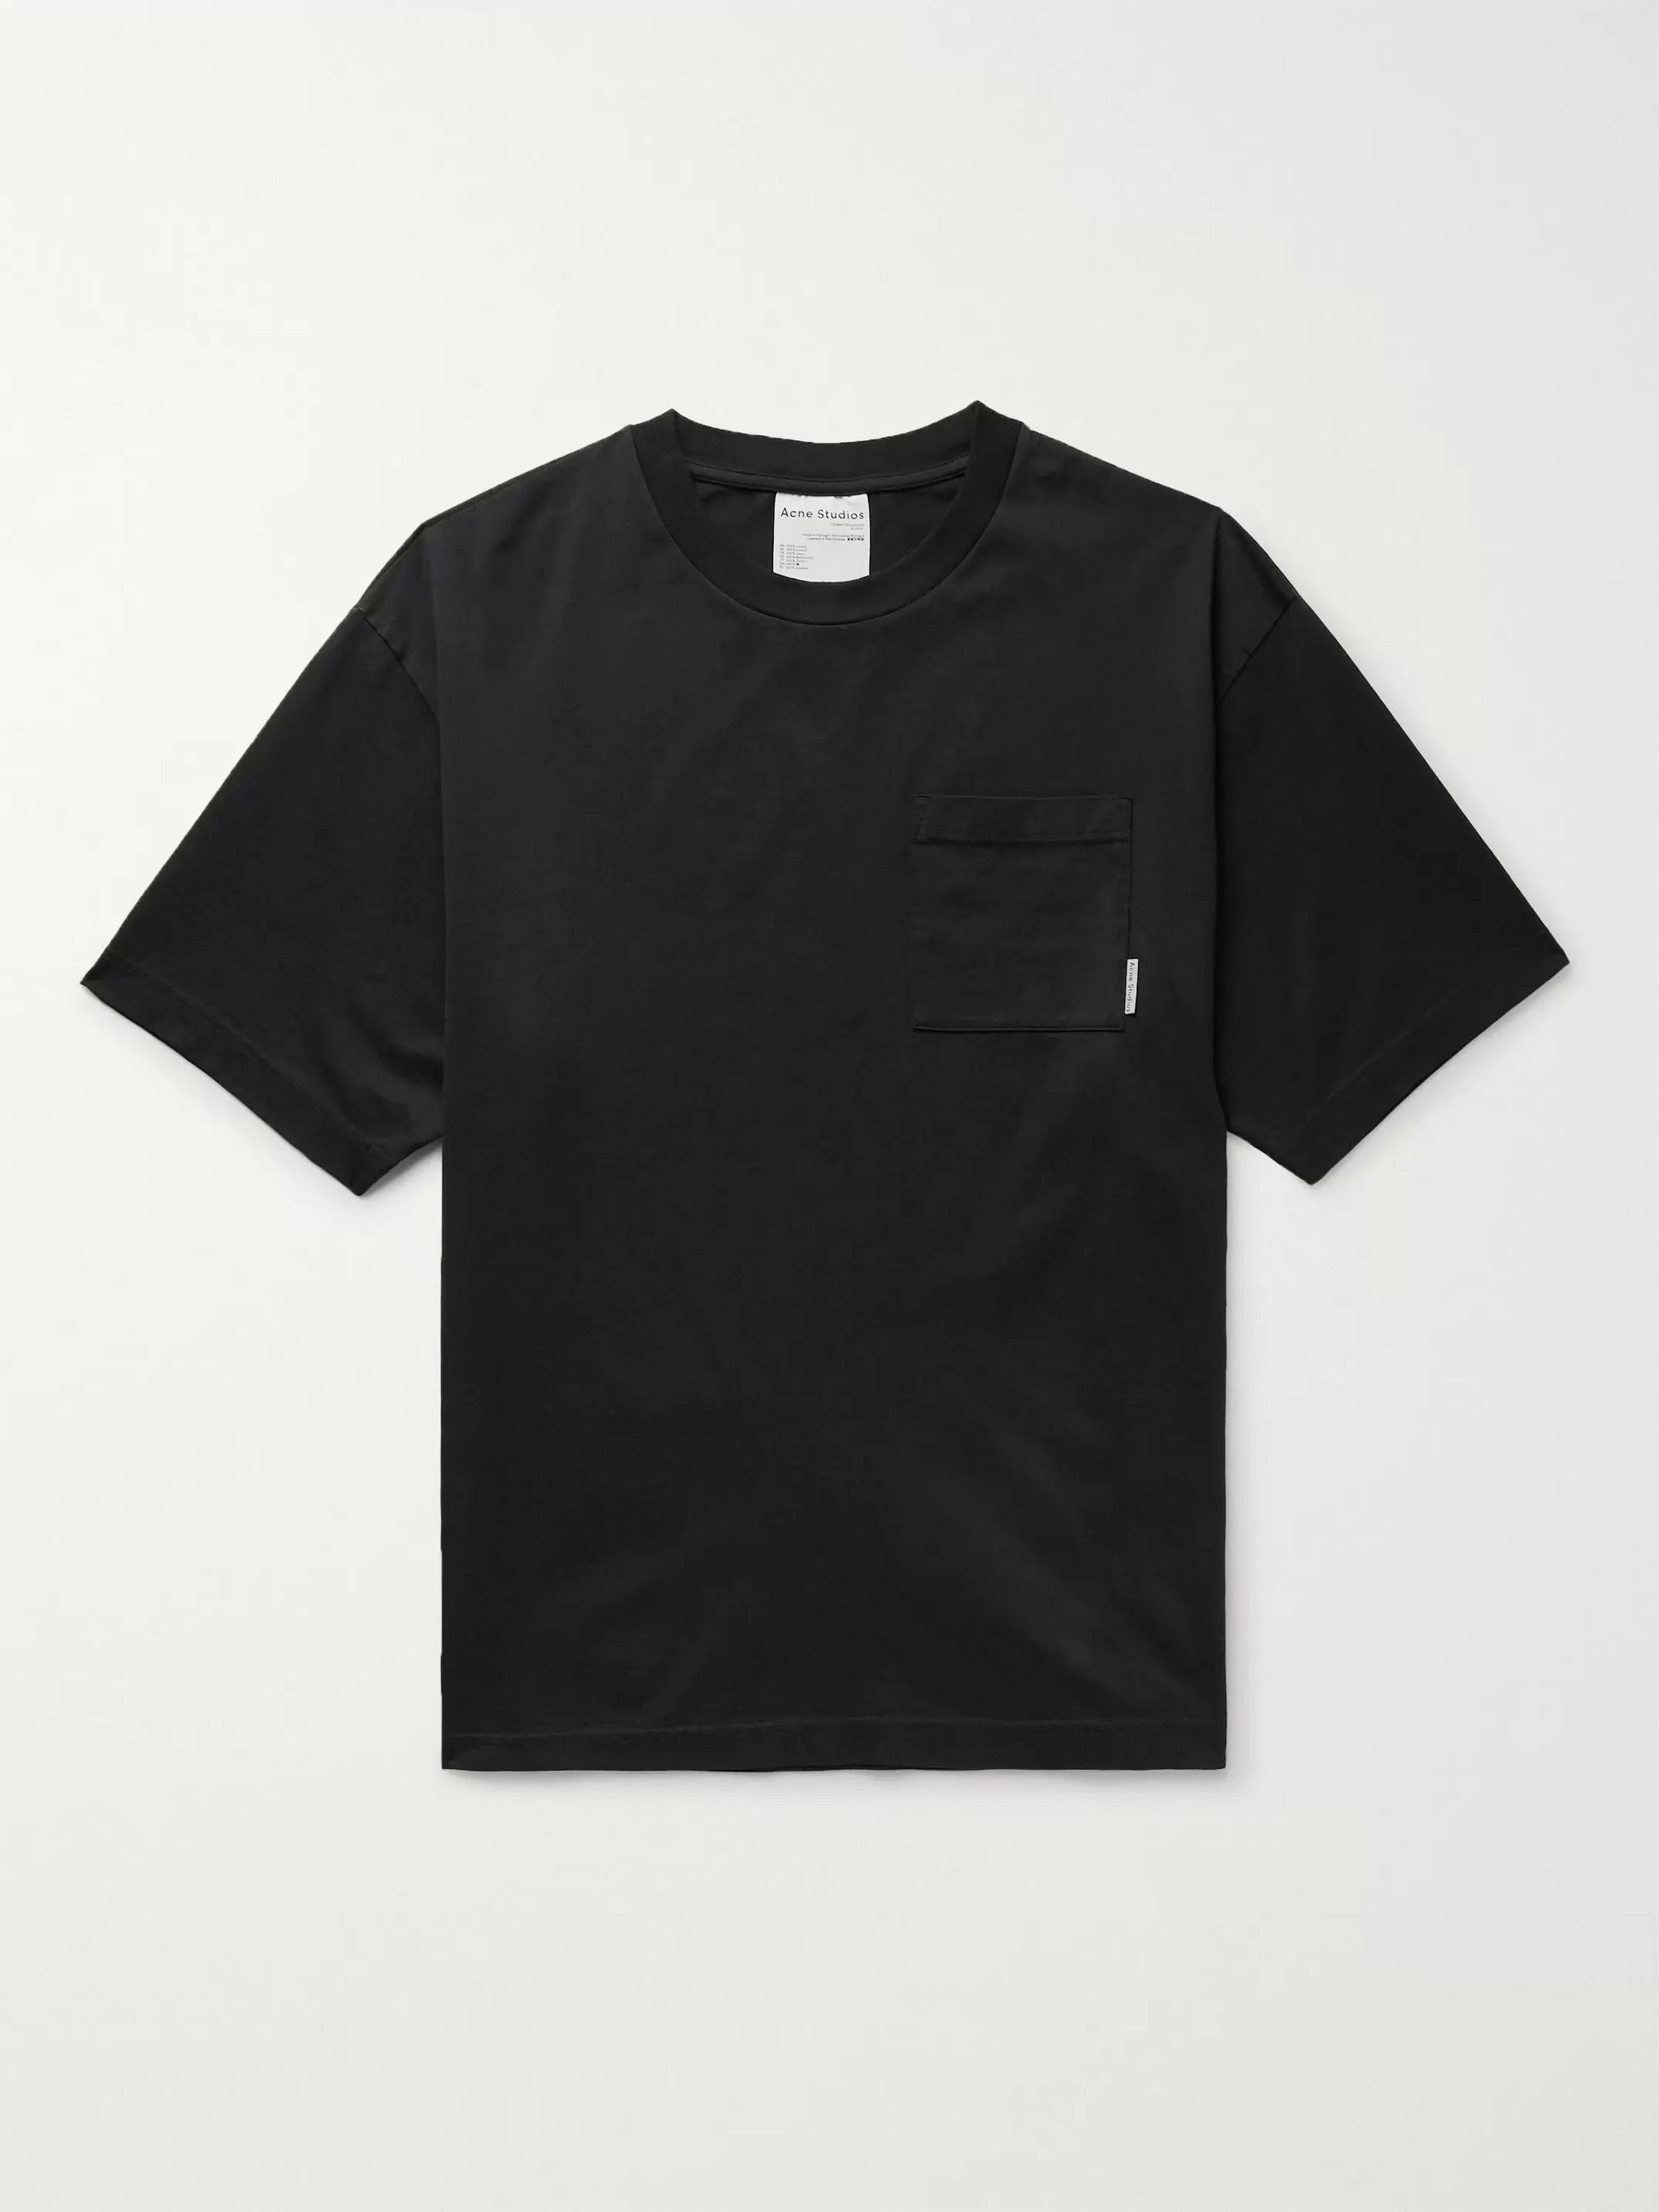 아크네 스튜디오 Acne Studios Oversized Cotton-Jersey T-Shirt,Black